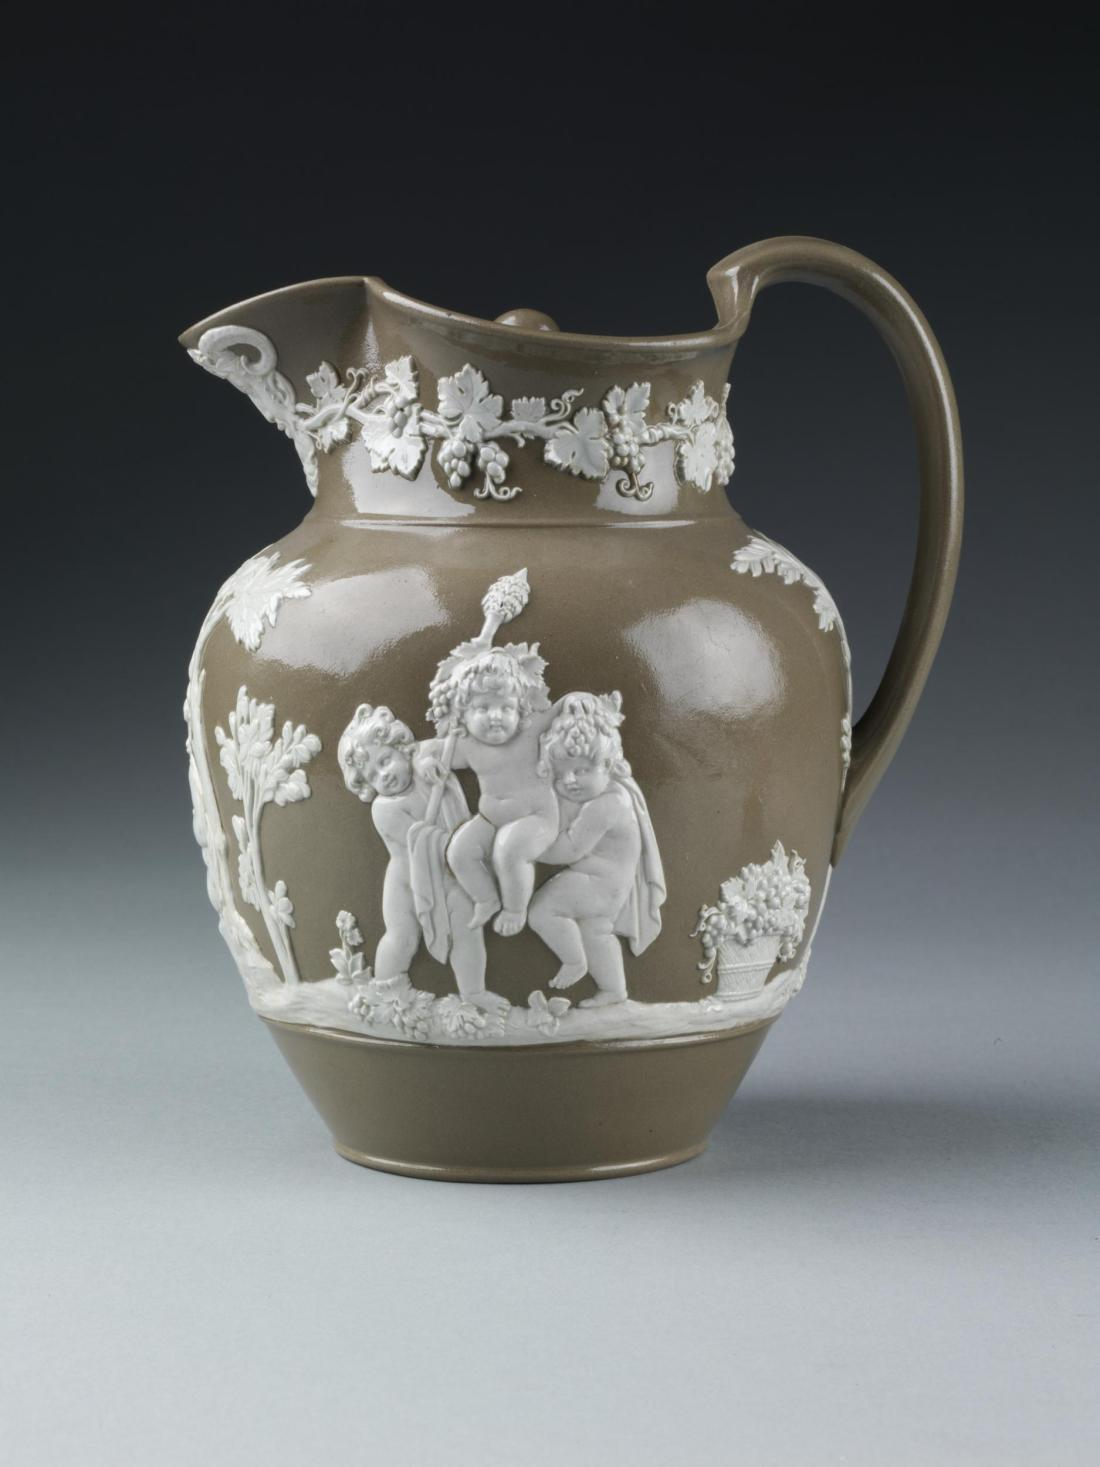 Jug and cover. 1800-1810.